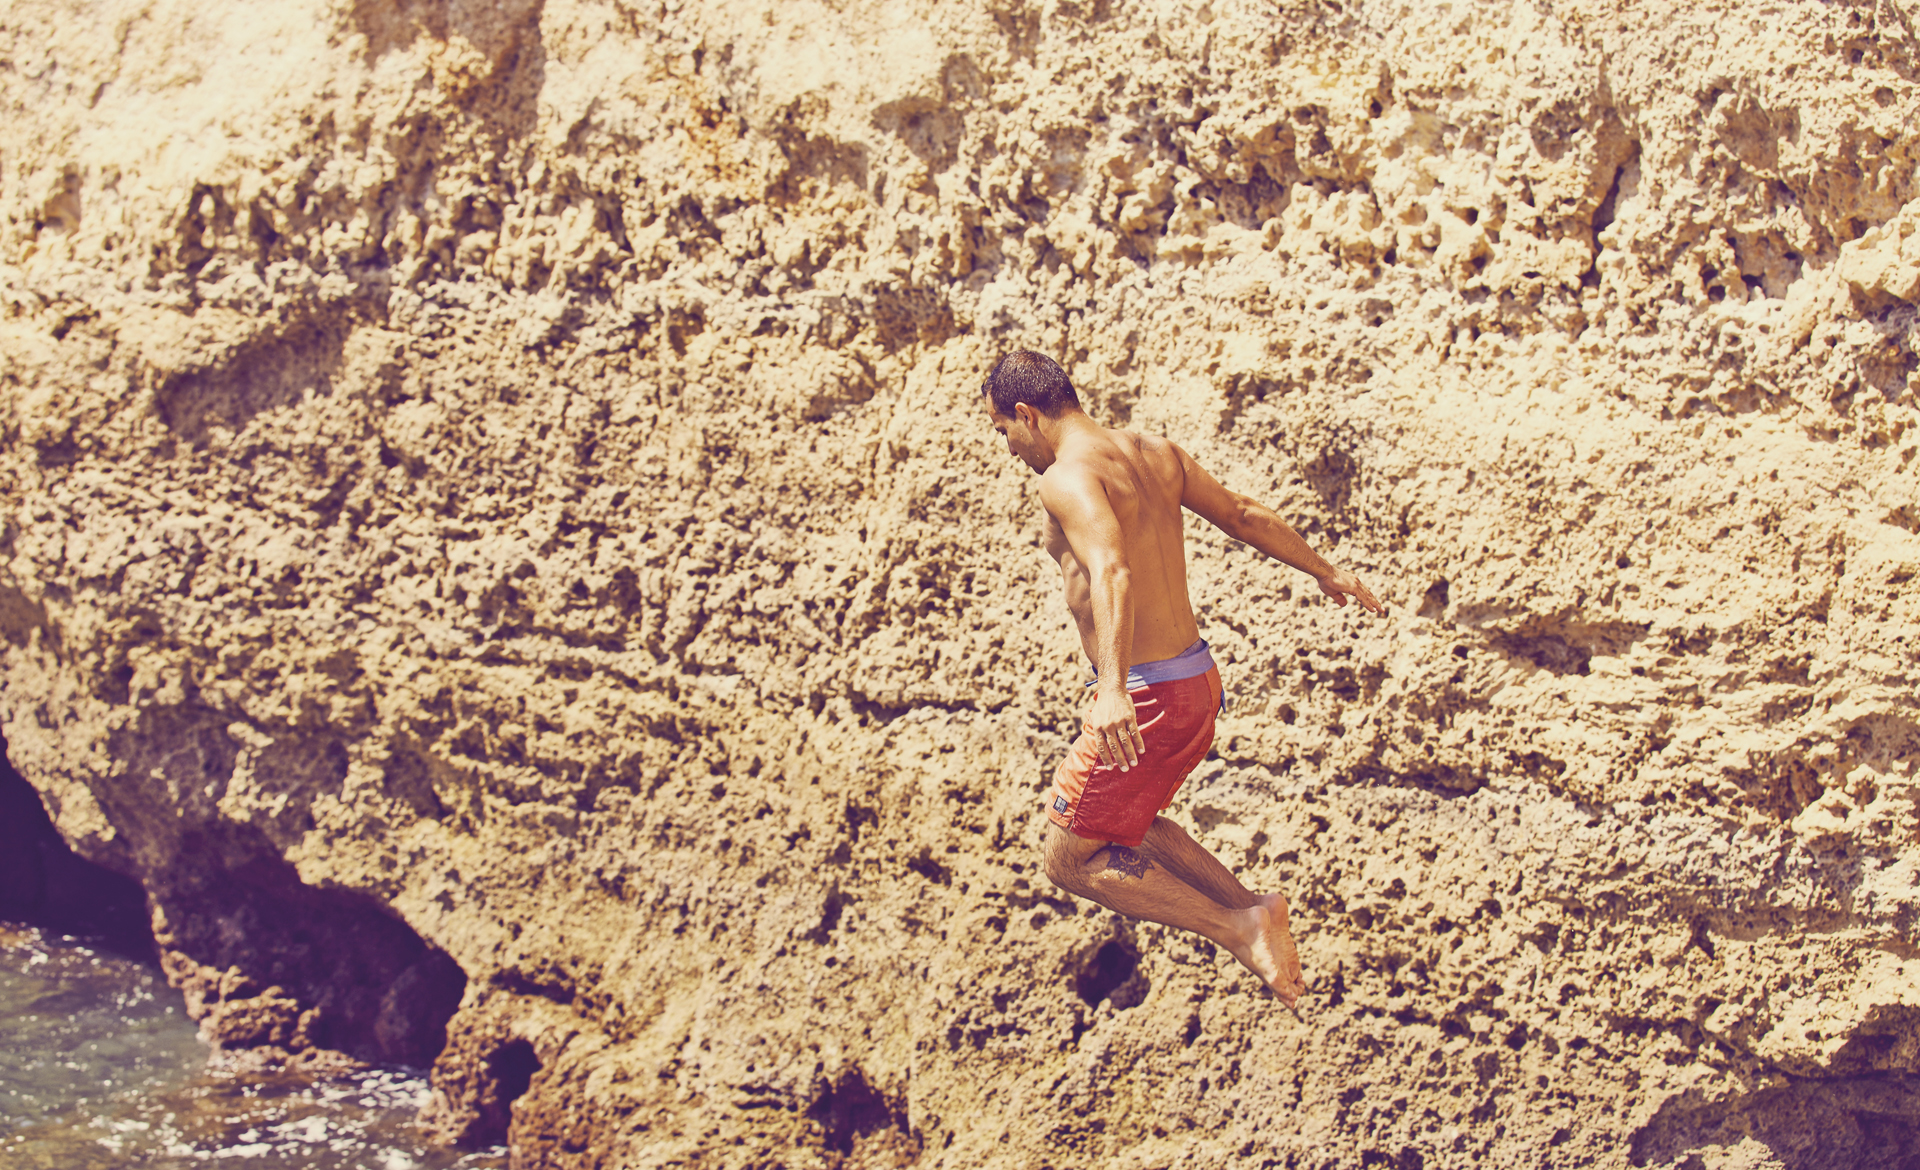 Mid air shot of a cliff jumper in Portugal